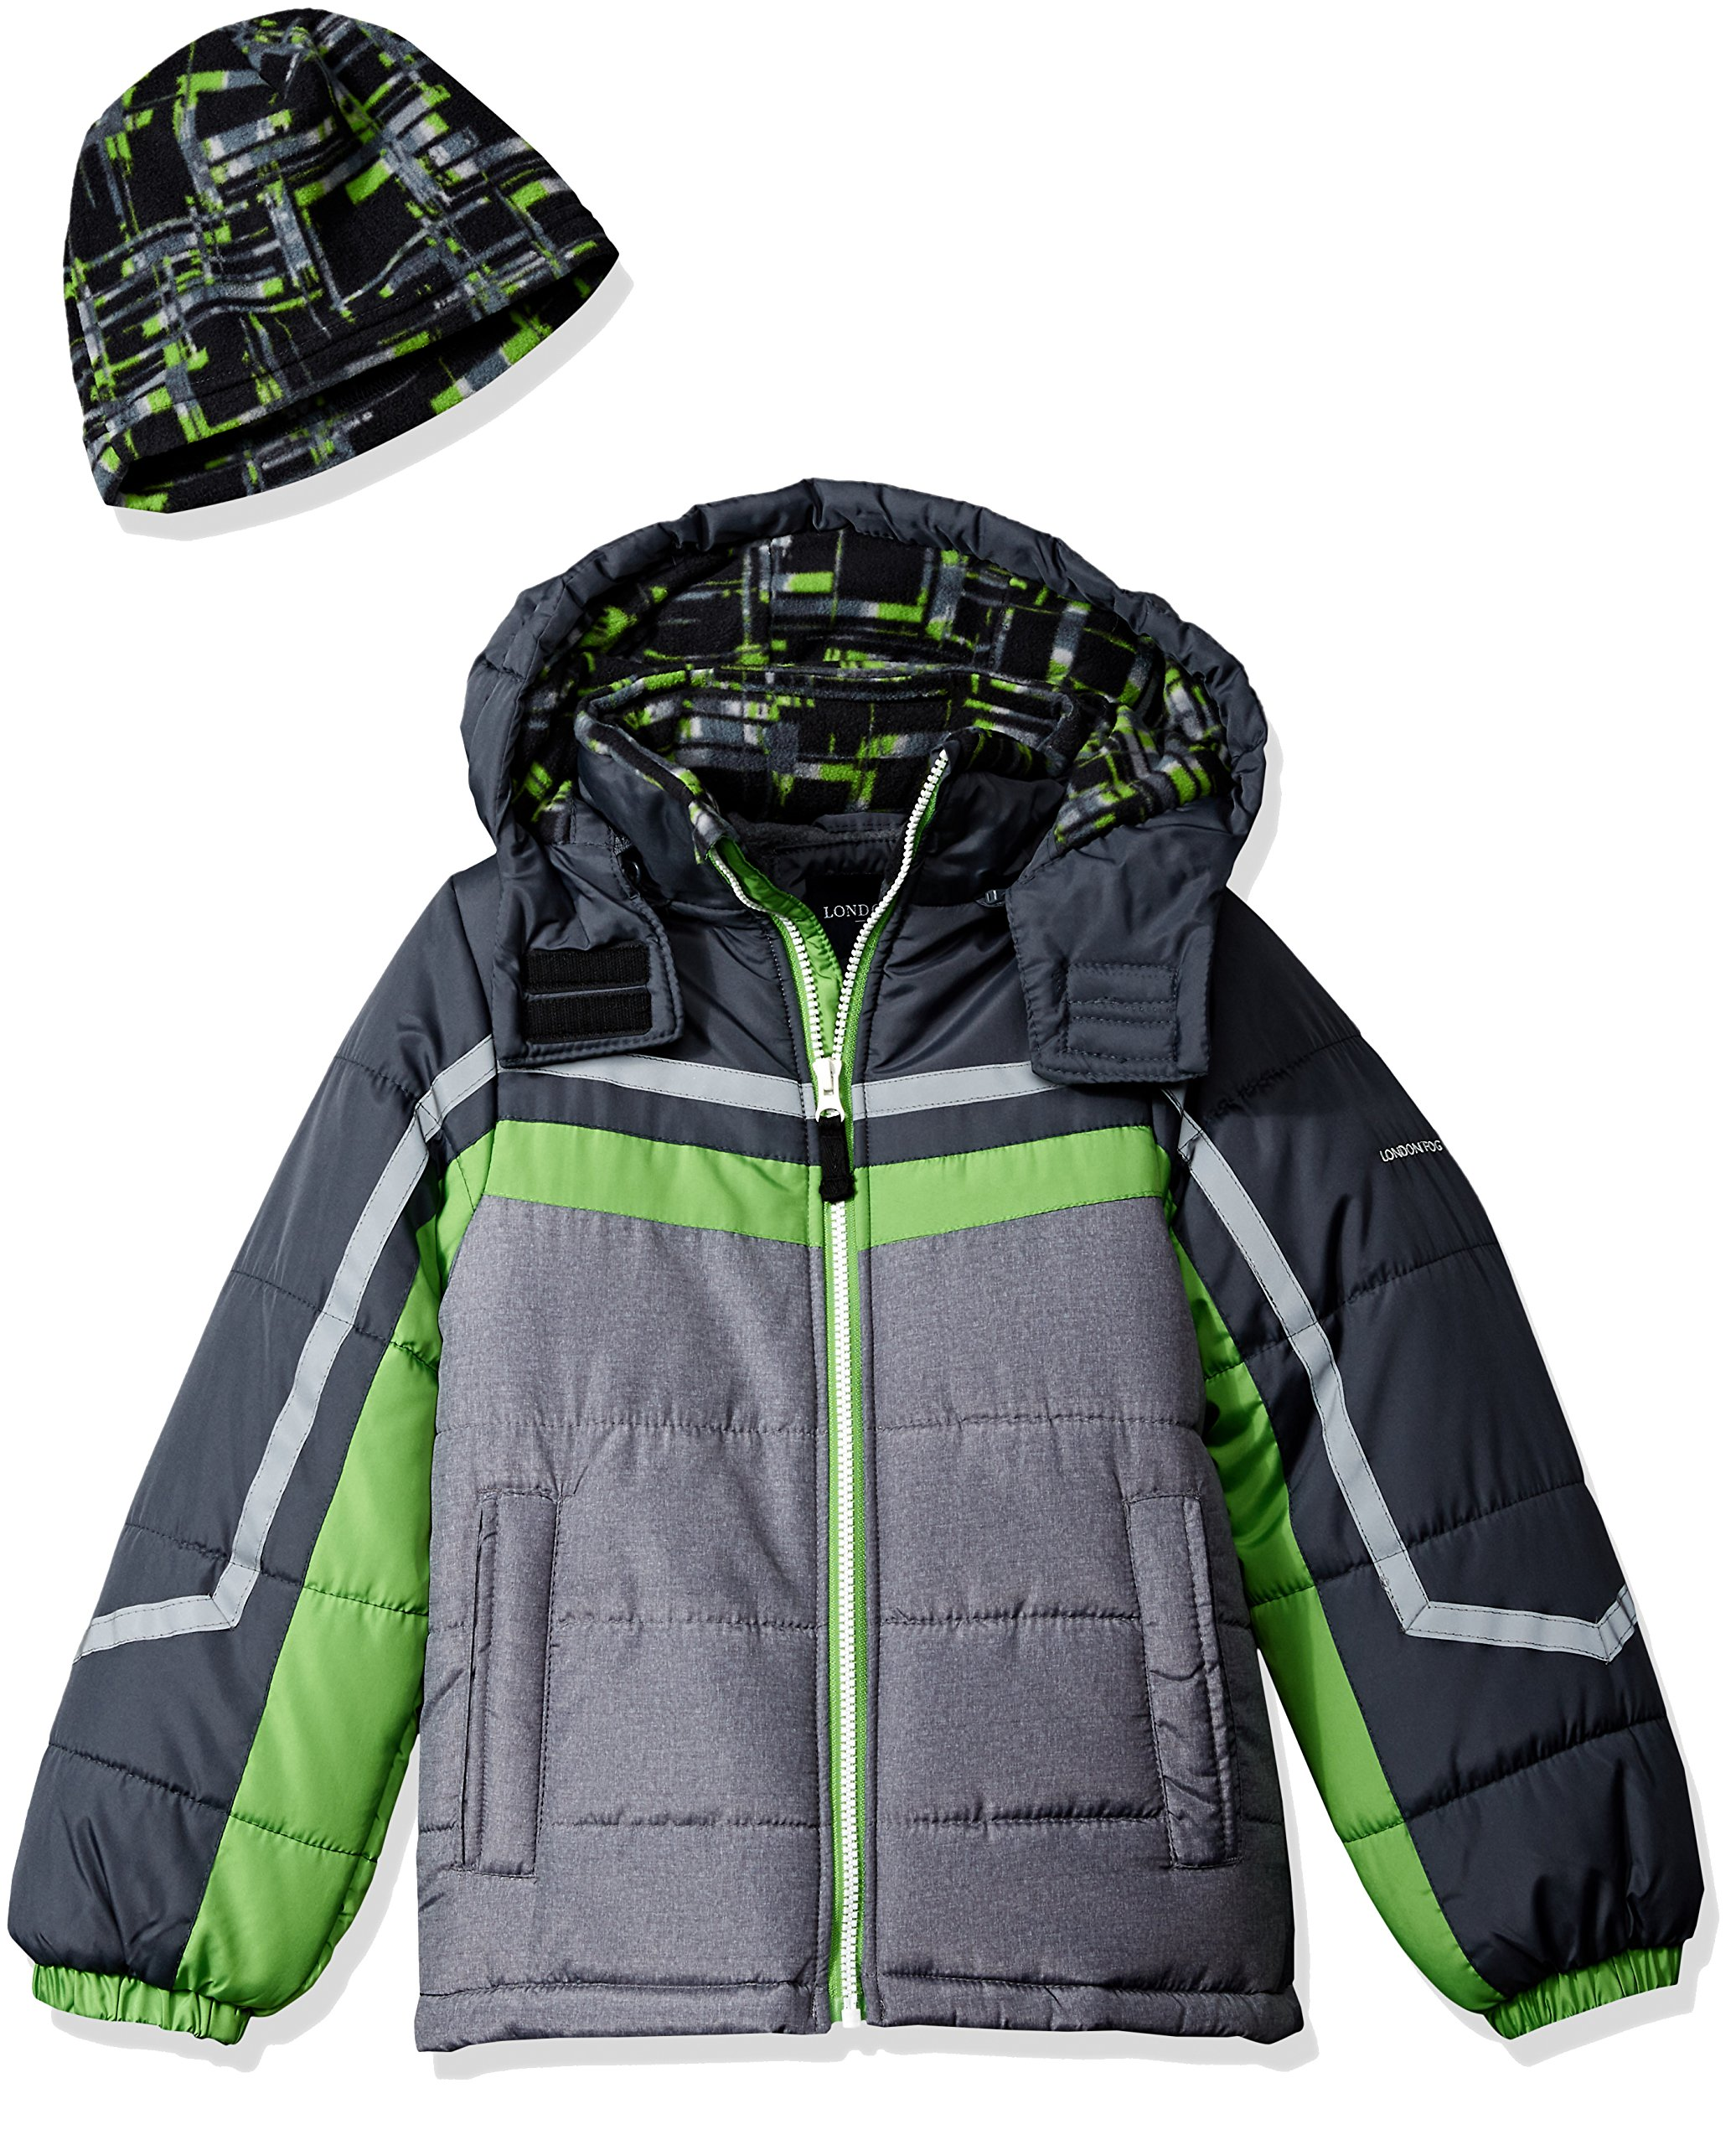 London Fog Toddler Boys' Active Heavyweight Jacket with Ski Cap, Super Green, 3T by London Fog